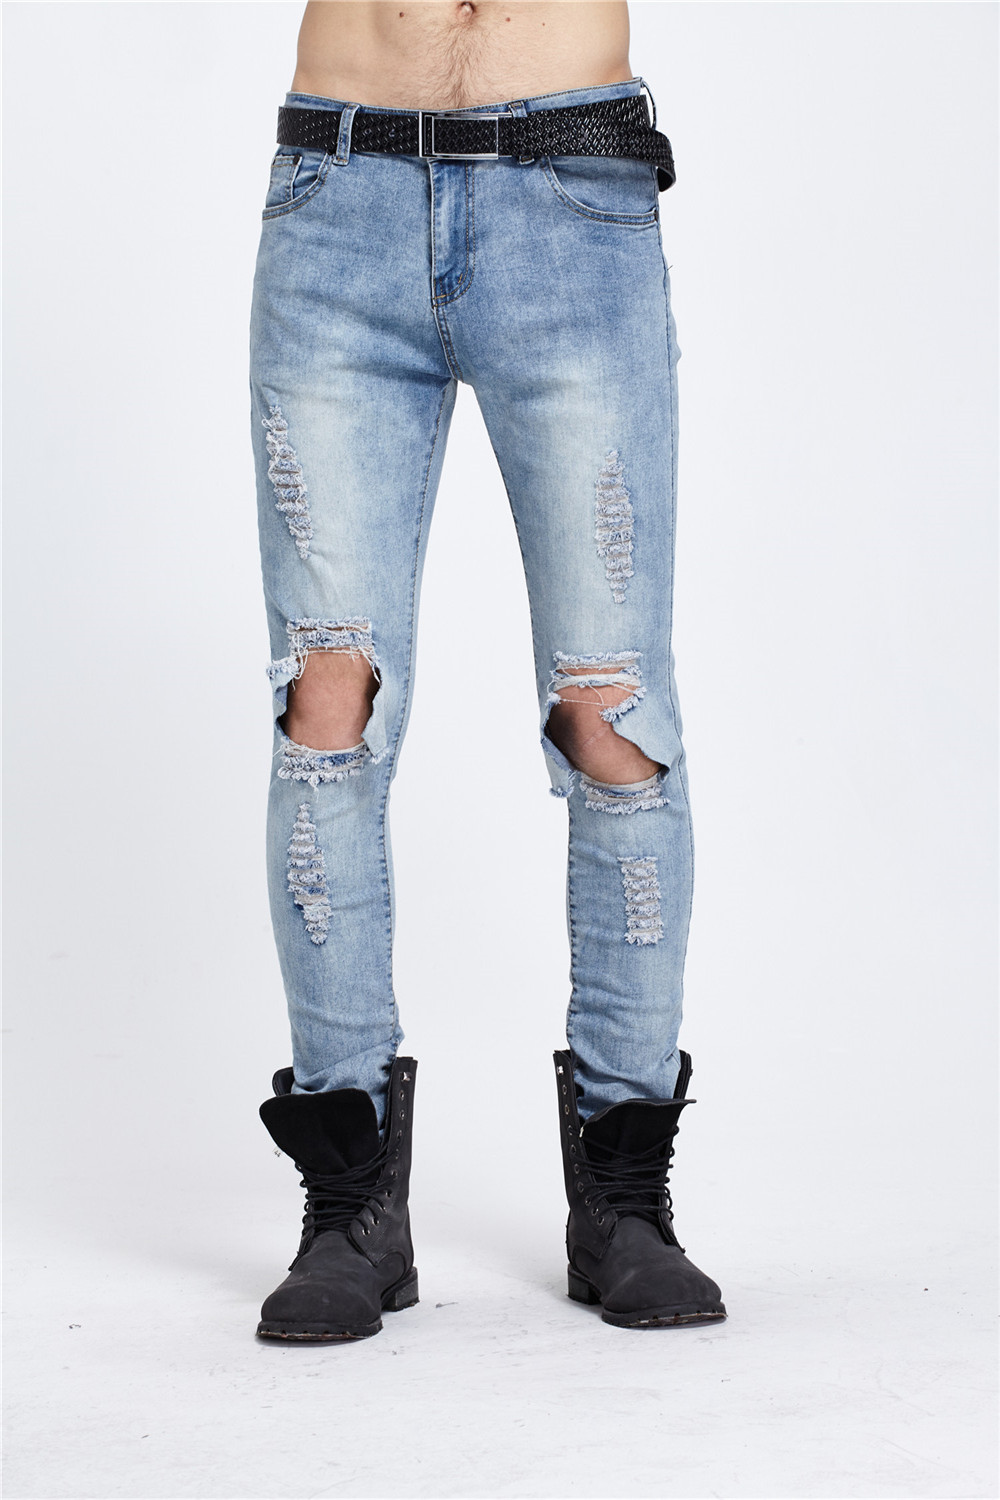 Mens Destroyed Slim Fit Light Blue Hip Hop Jeans Patchwork Hole Ripped Acid Washed Punk Rock Style Denim Ankle Zipper Jeans 2017 brand ripped hole jeans for men mens hip hop zipper biker denim pants palace hombre destroyed rock jeans slim fit trousers